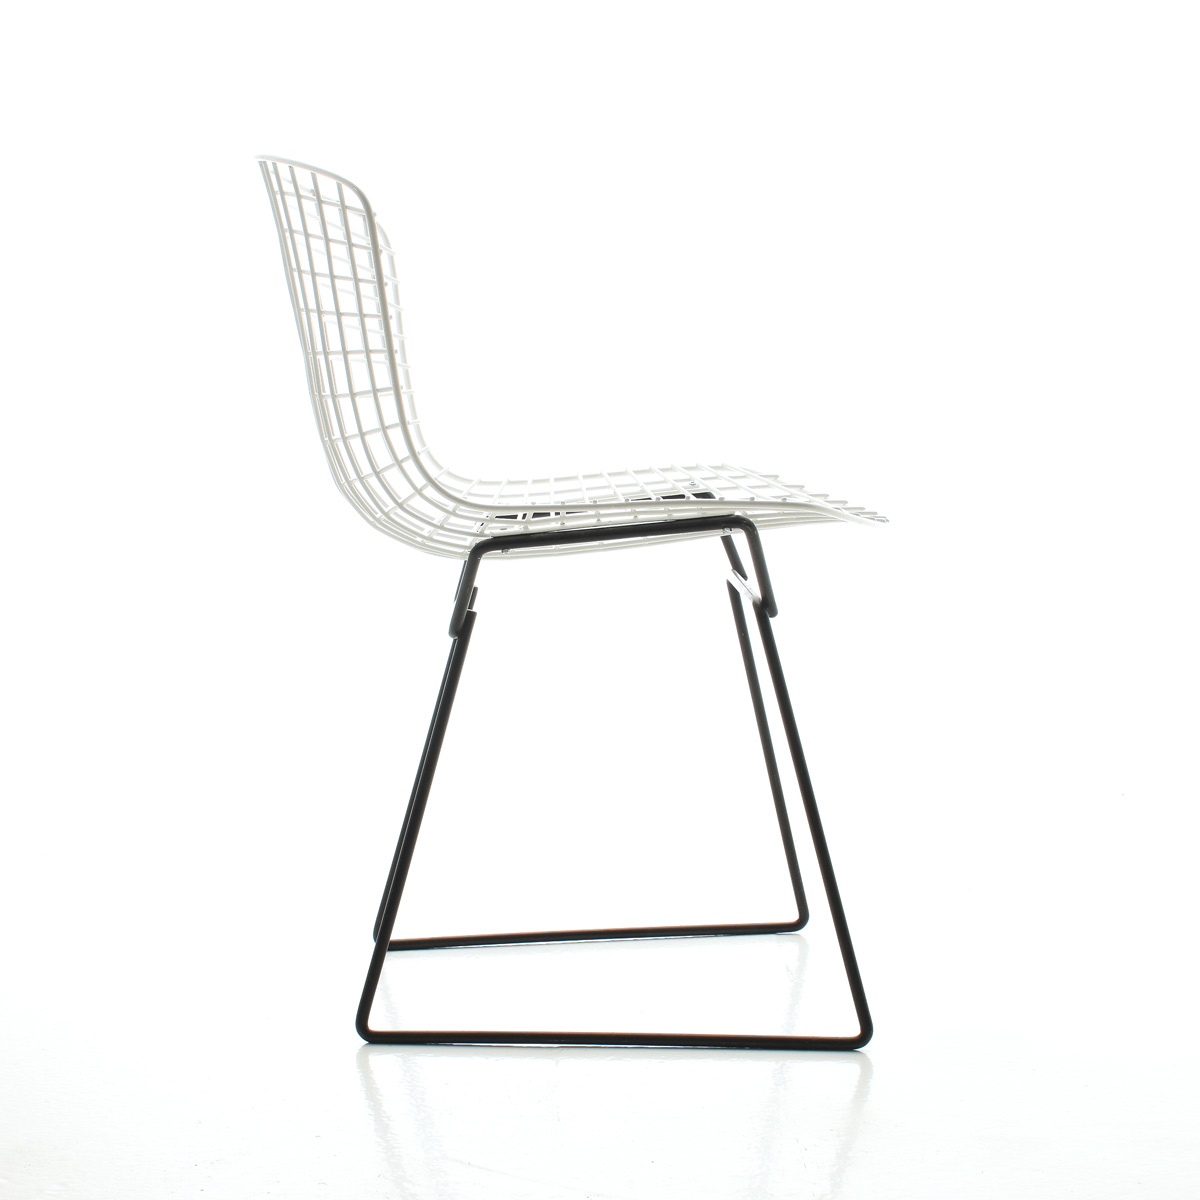 Bertoia Stühle, Knoll International, 6er Set. - 1